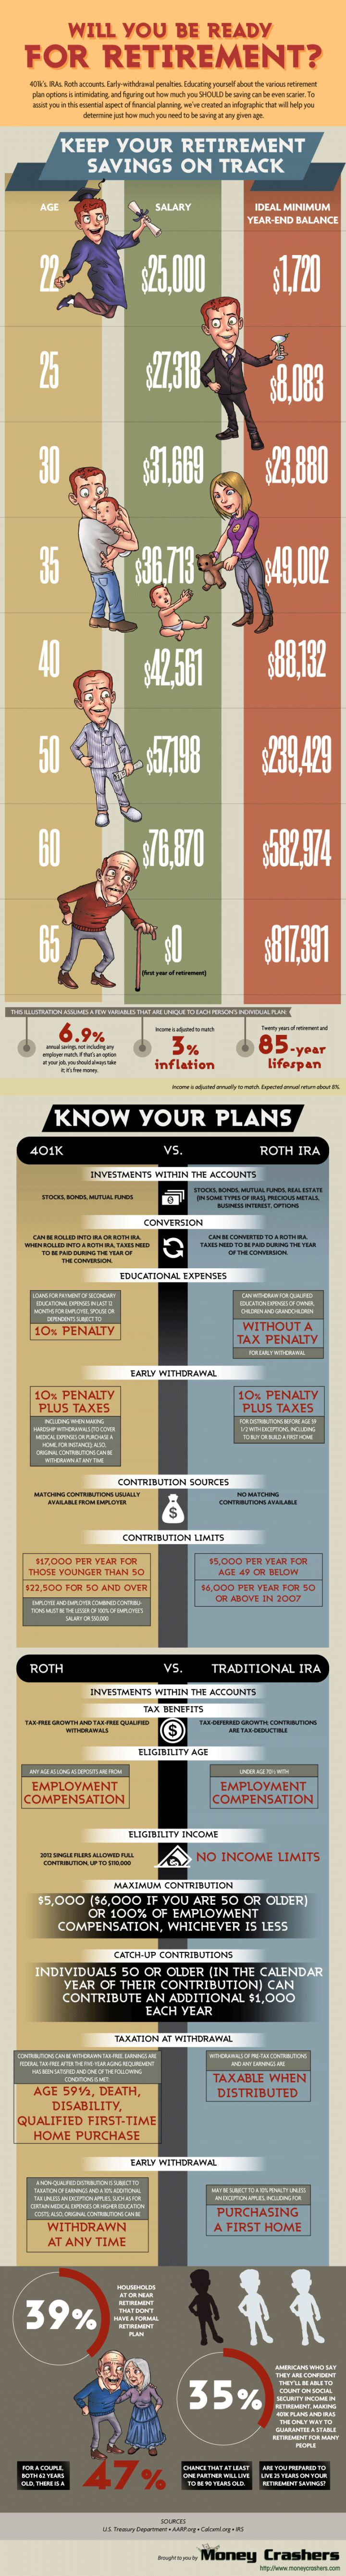 How Much to Save for Retirement - Are You on Track? (Infographic)